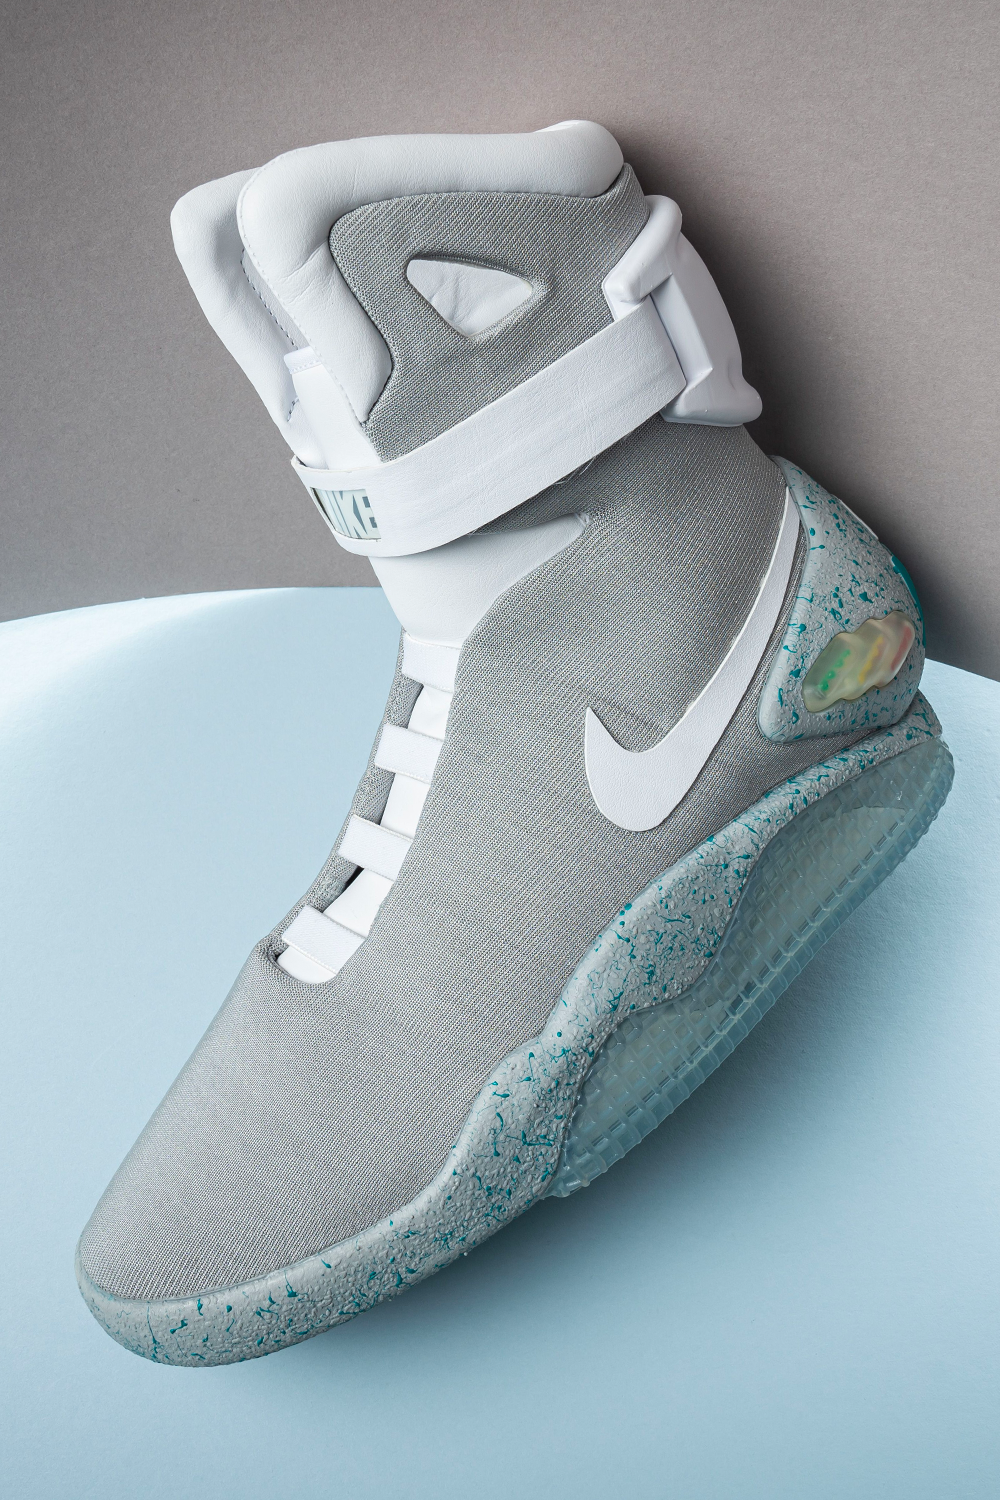 43++ Back to the future shoes price ideas information